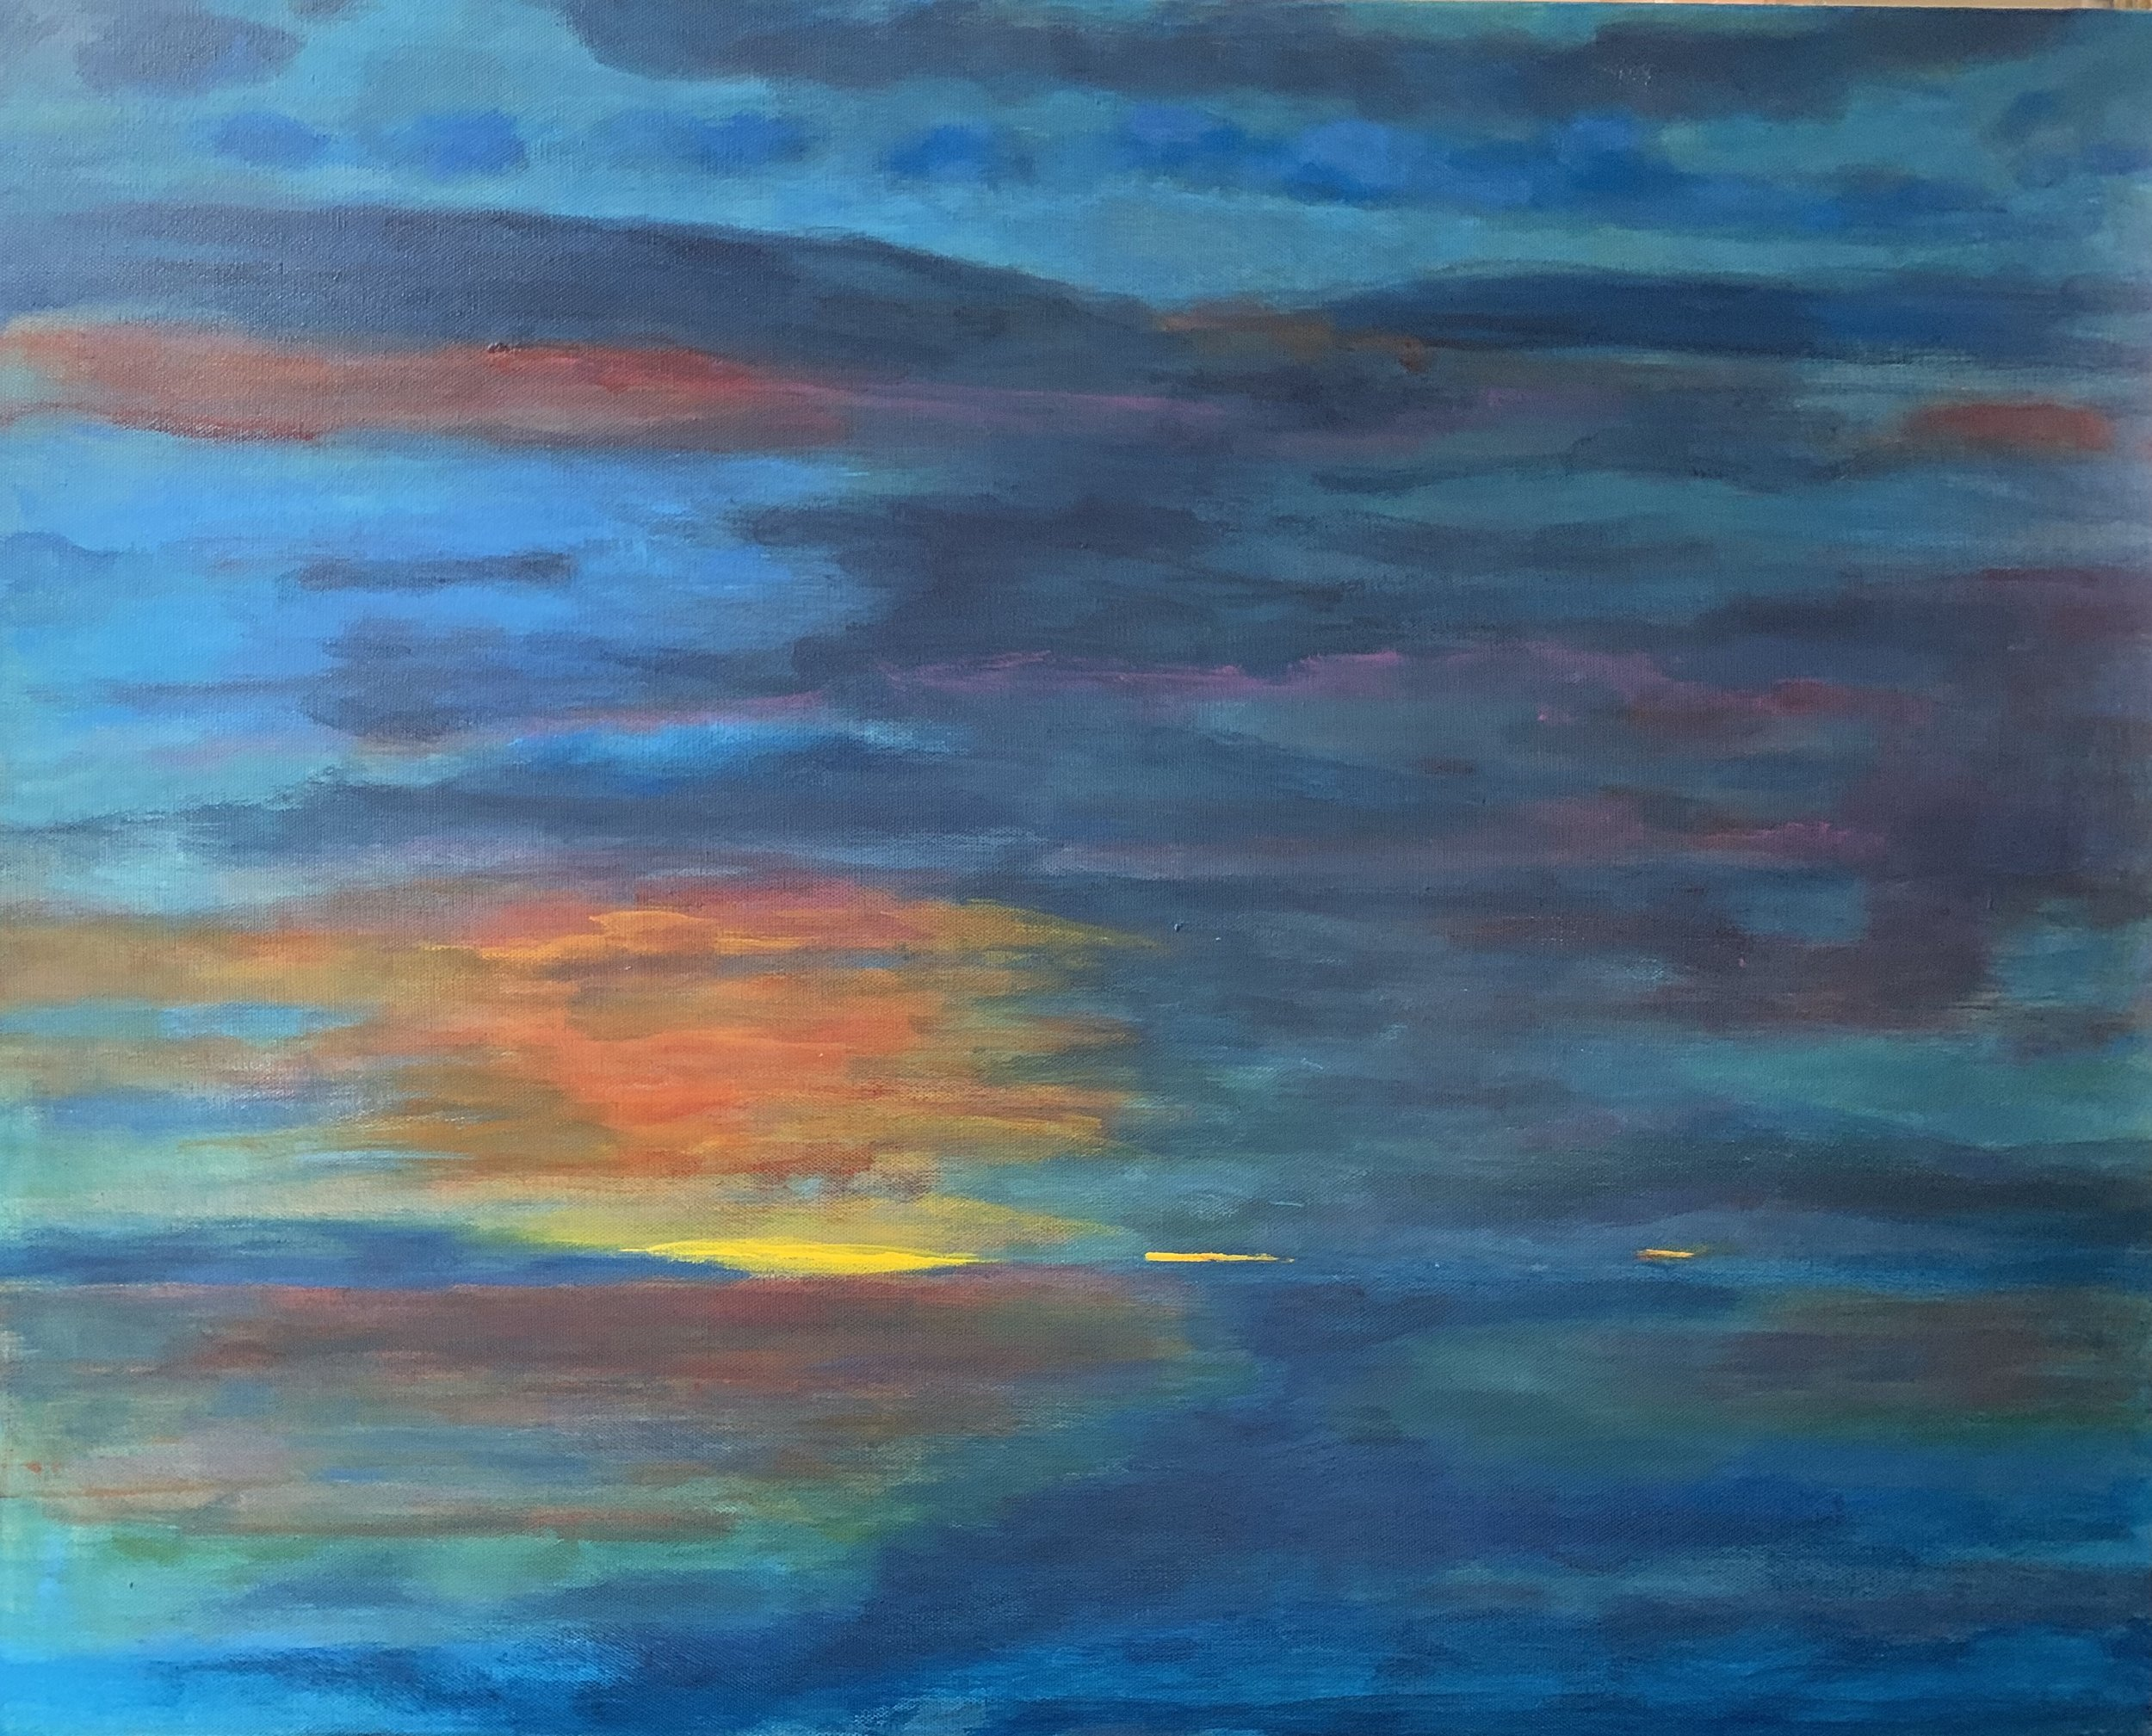 """First Light"" 24"" x 30"" acrylic on stretched canvas"